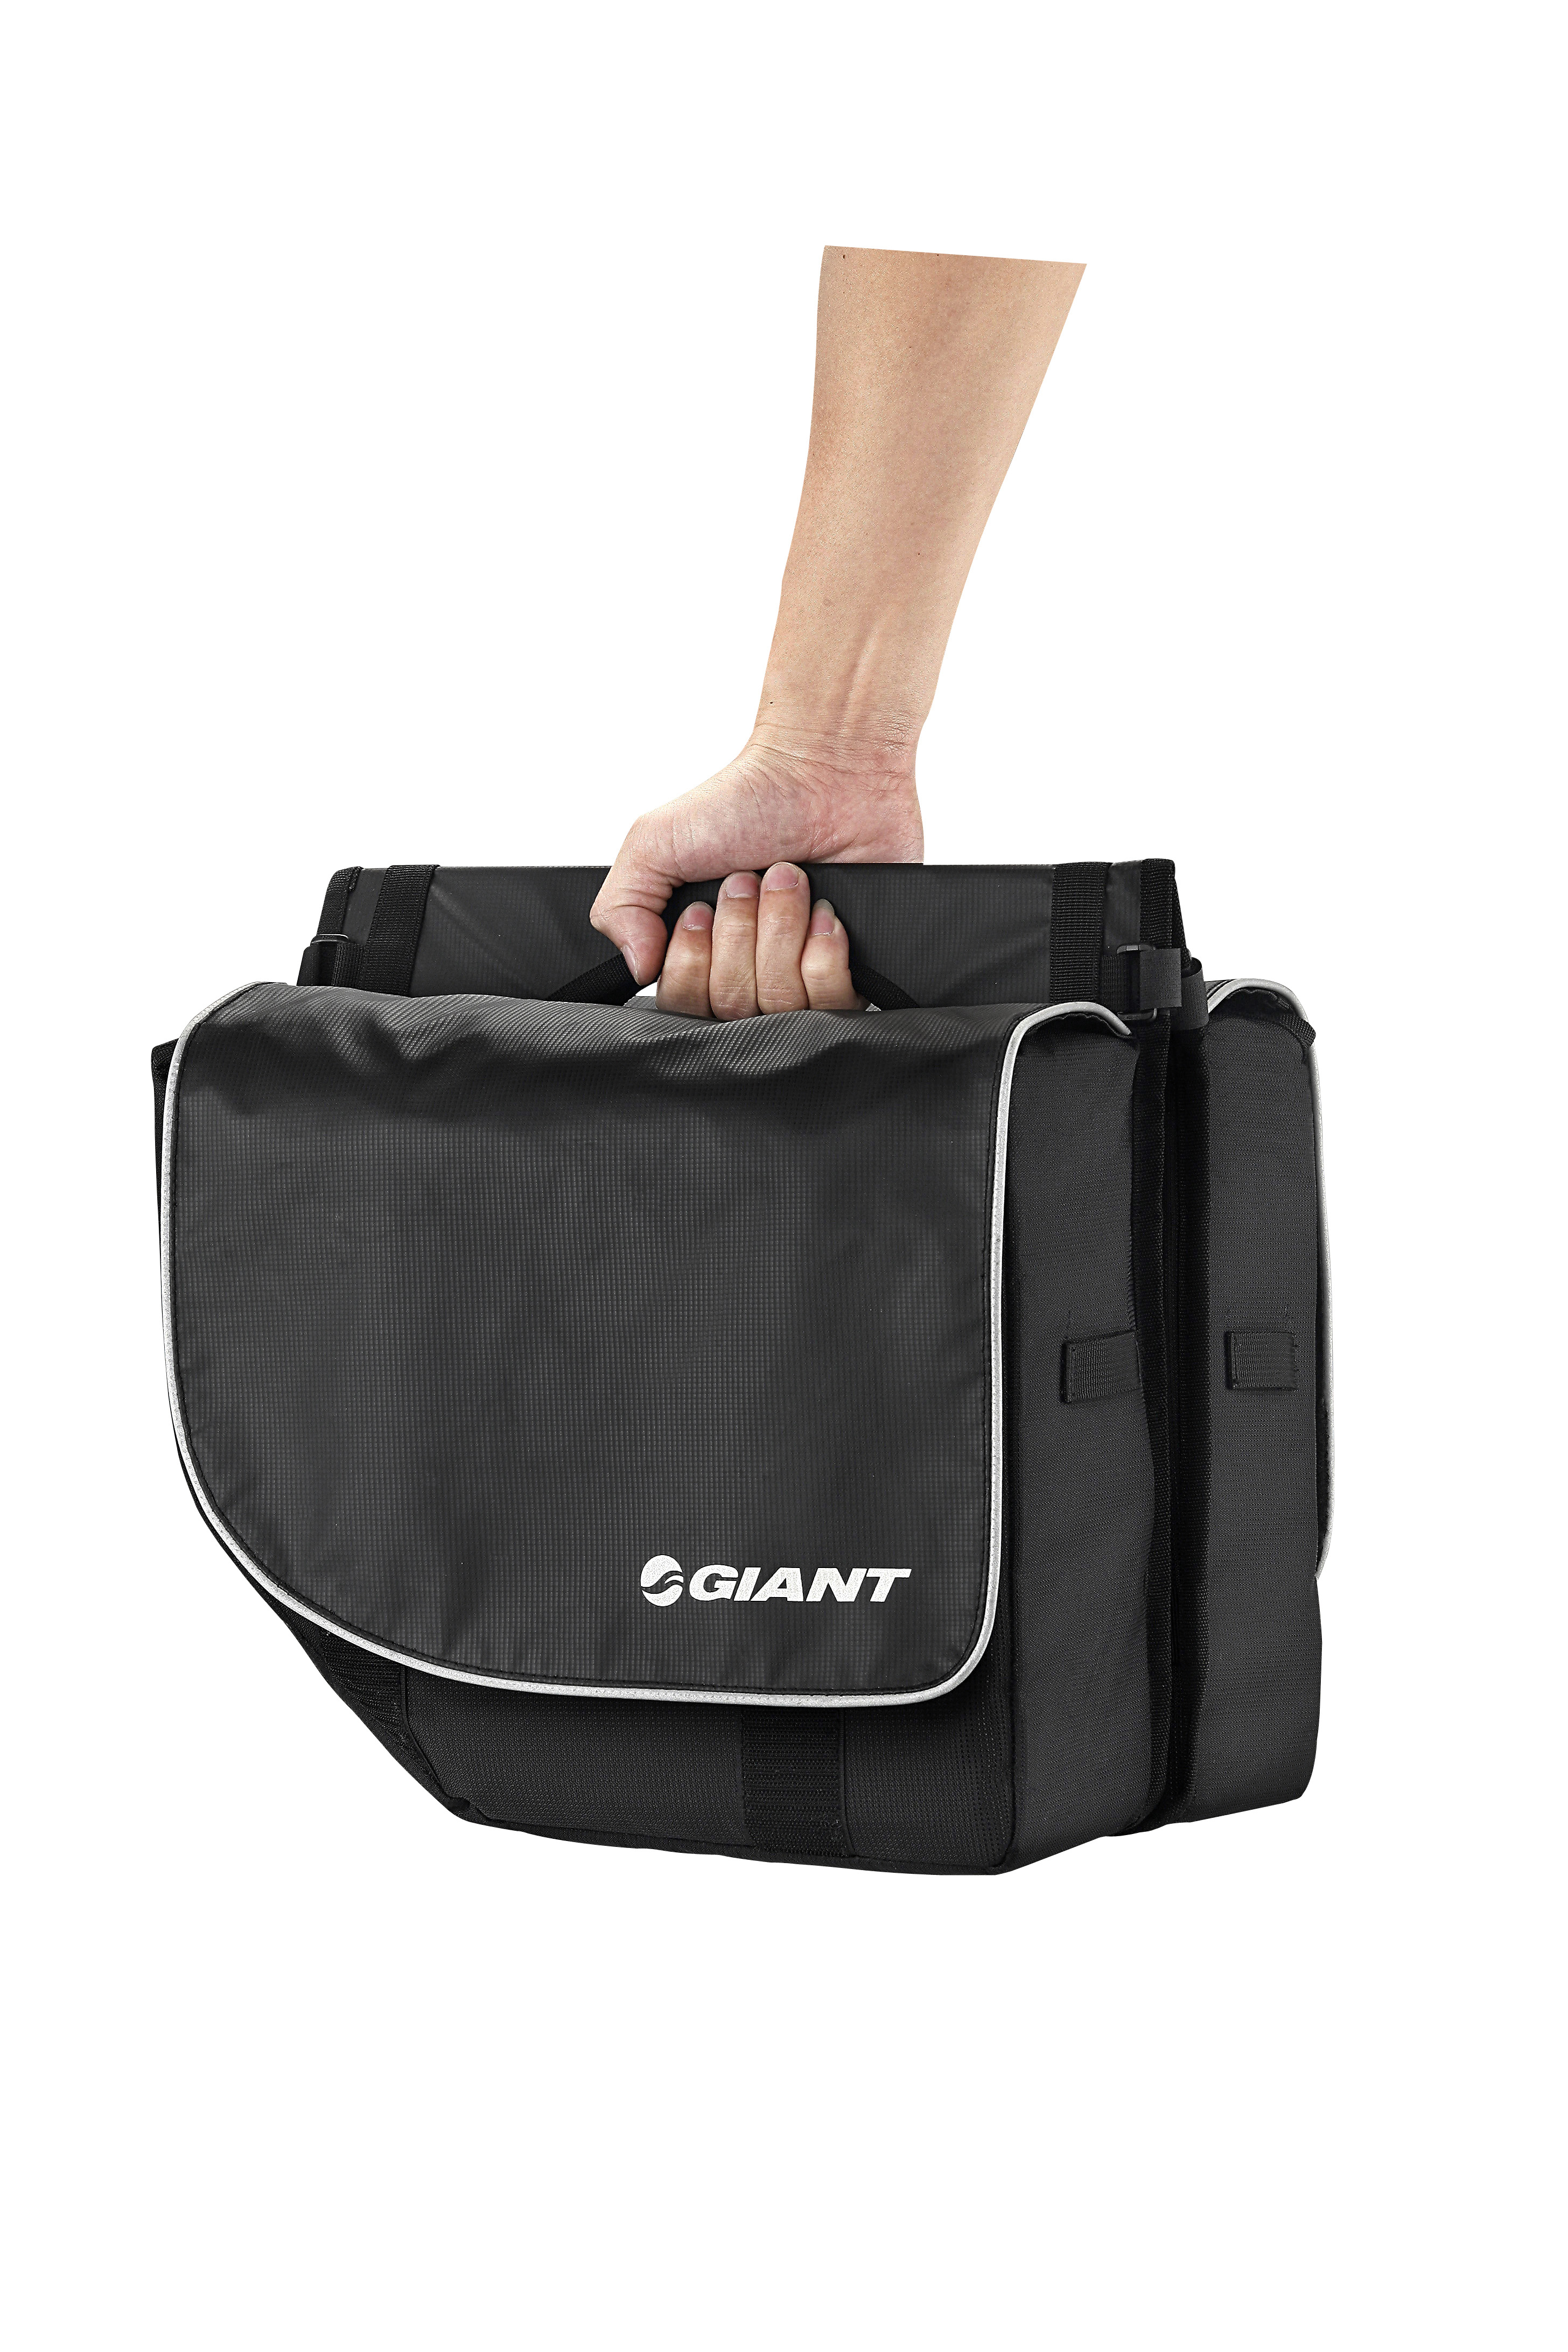 GIANT PANNIER BAG CITY 簡易式馬鞍袋